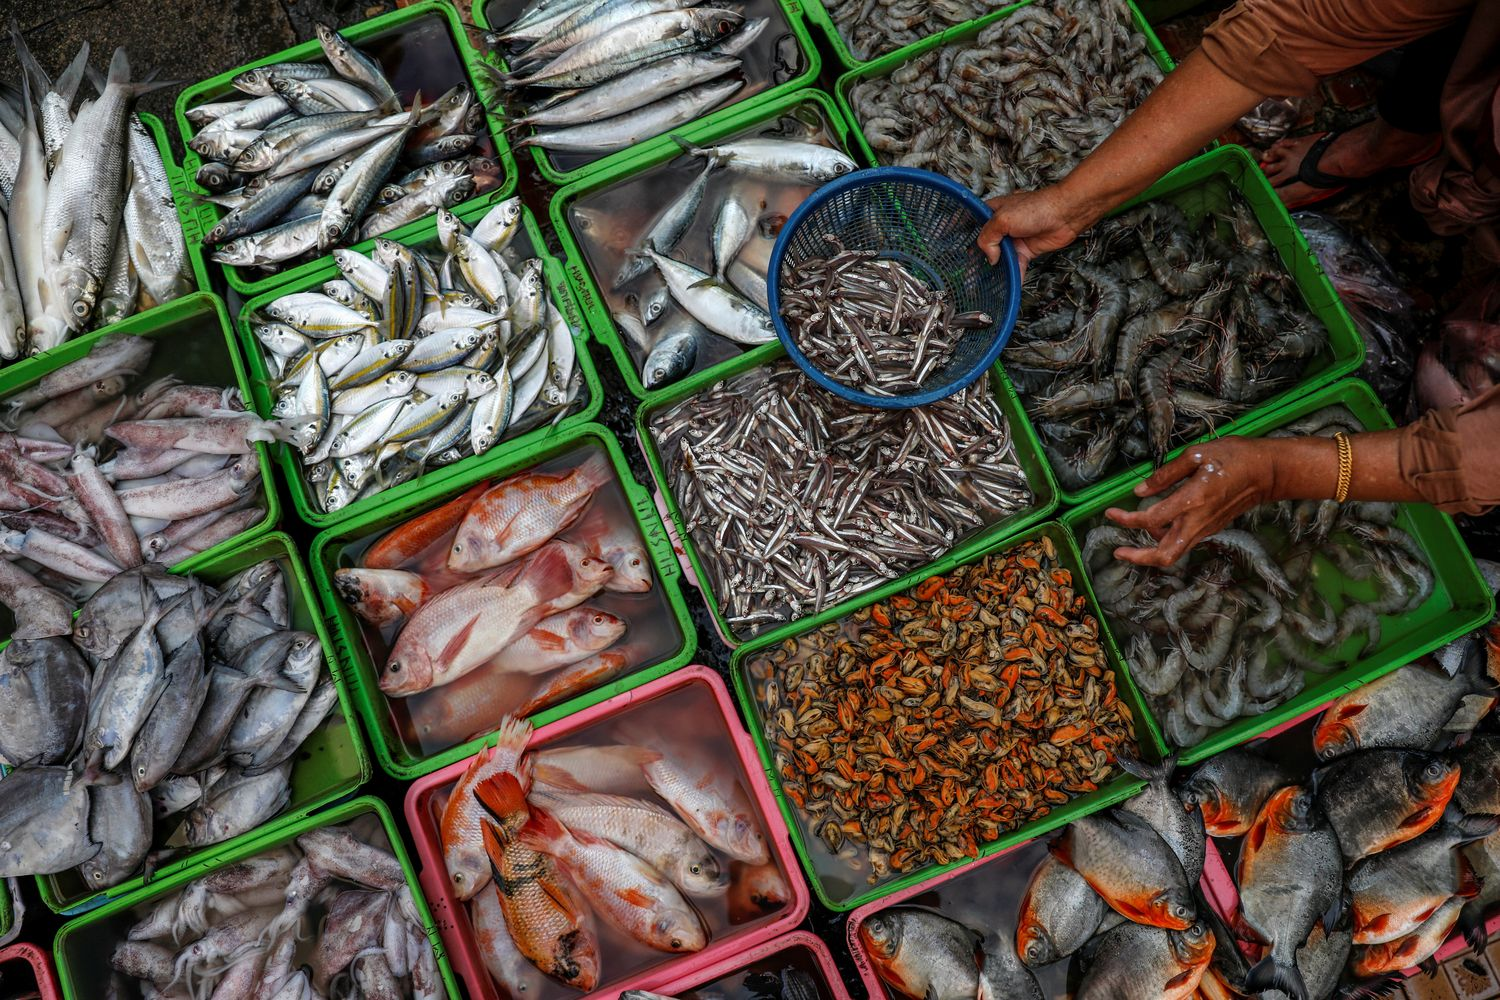 A vendor selling seafood prepares fish as she serves her customers at a traditional market in Jakarta, Indonesia, on March 1 this year. (Reuters photo)